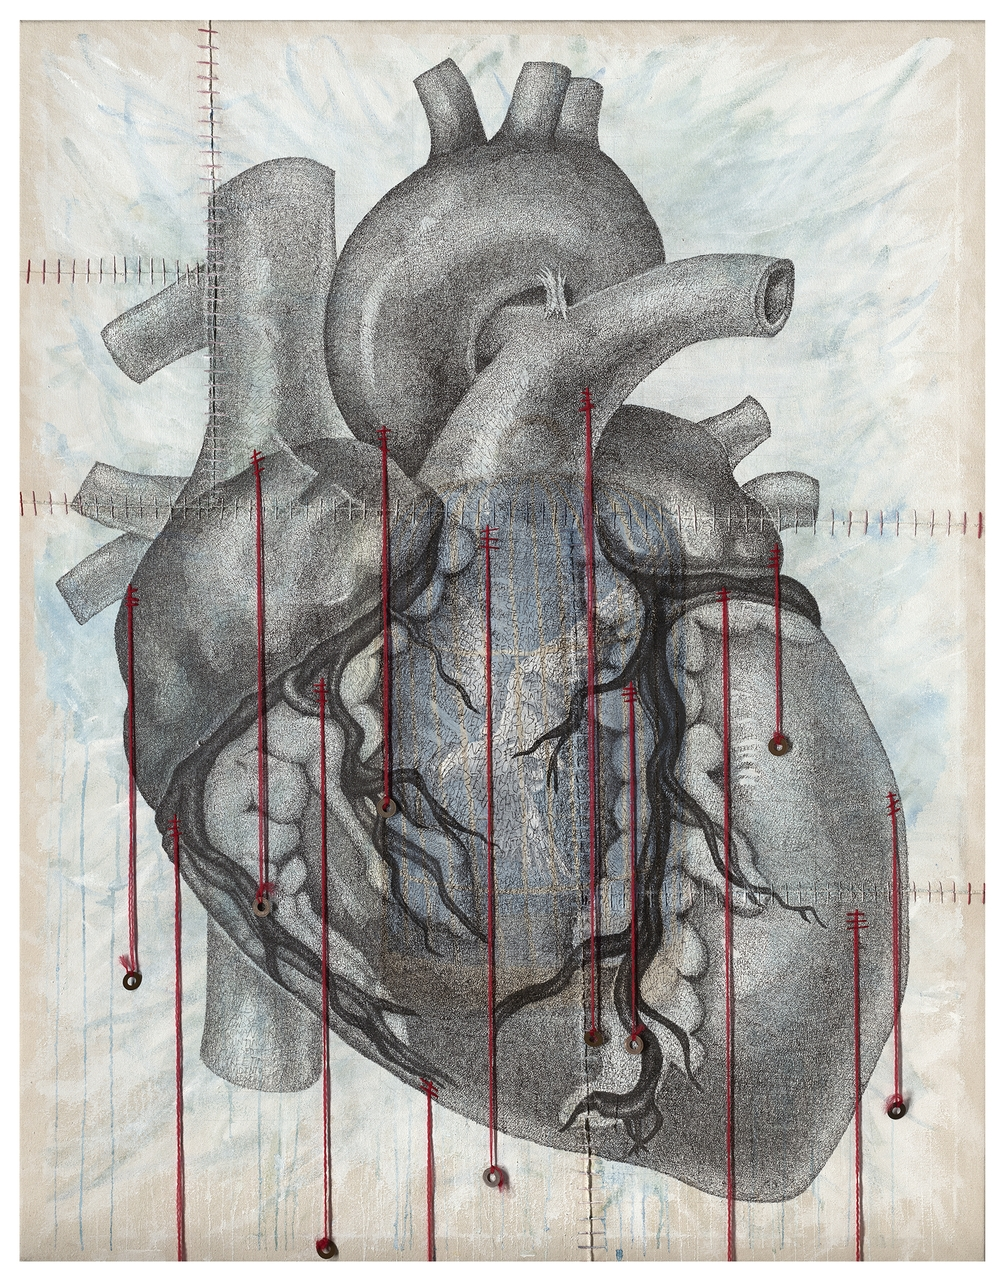 Anatomy of a Human Heart (Strings)